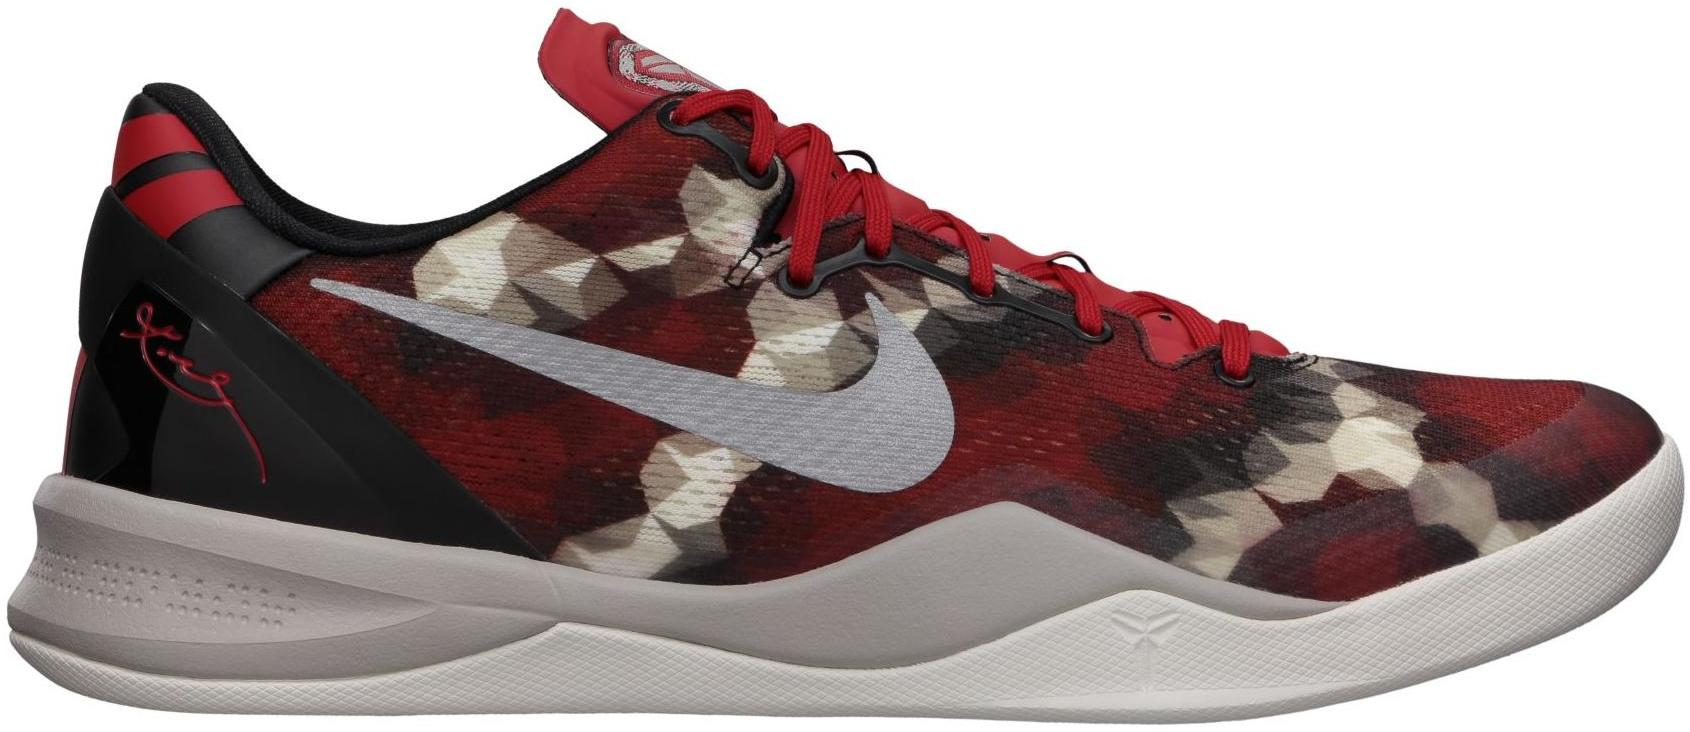 huge discount 6199c 0a543 ... promo code for buy nike kobe 8 shoes deadstock sneakers c2ced cd838